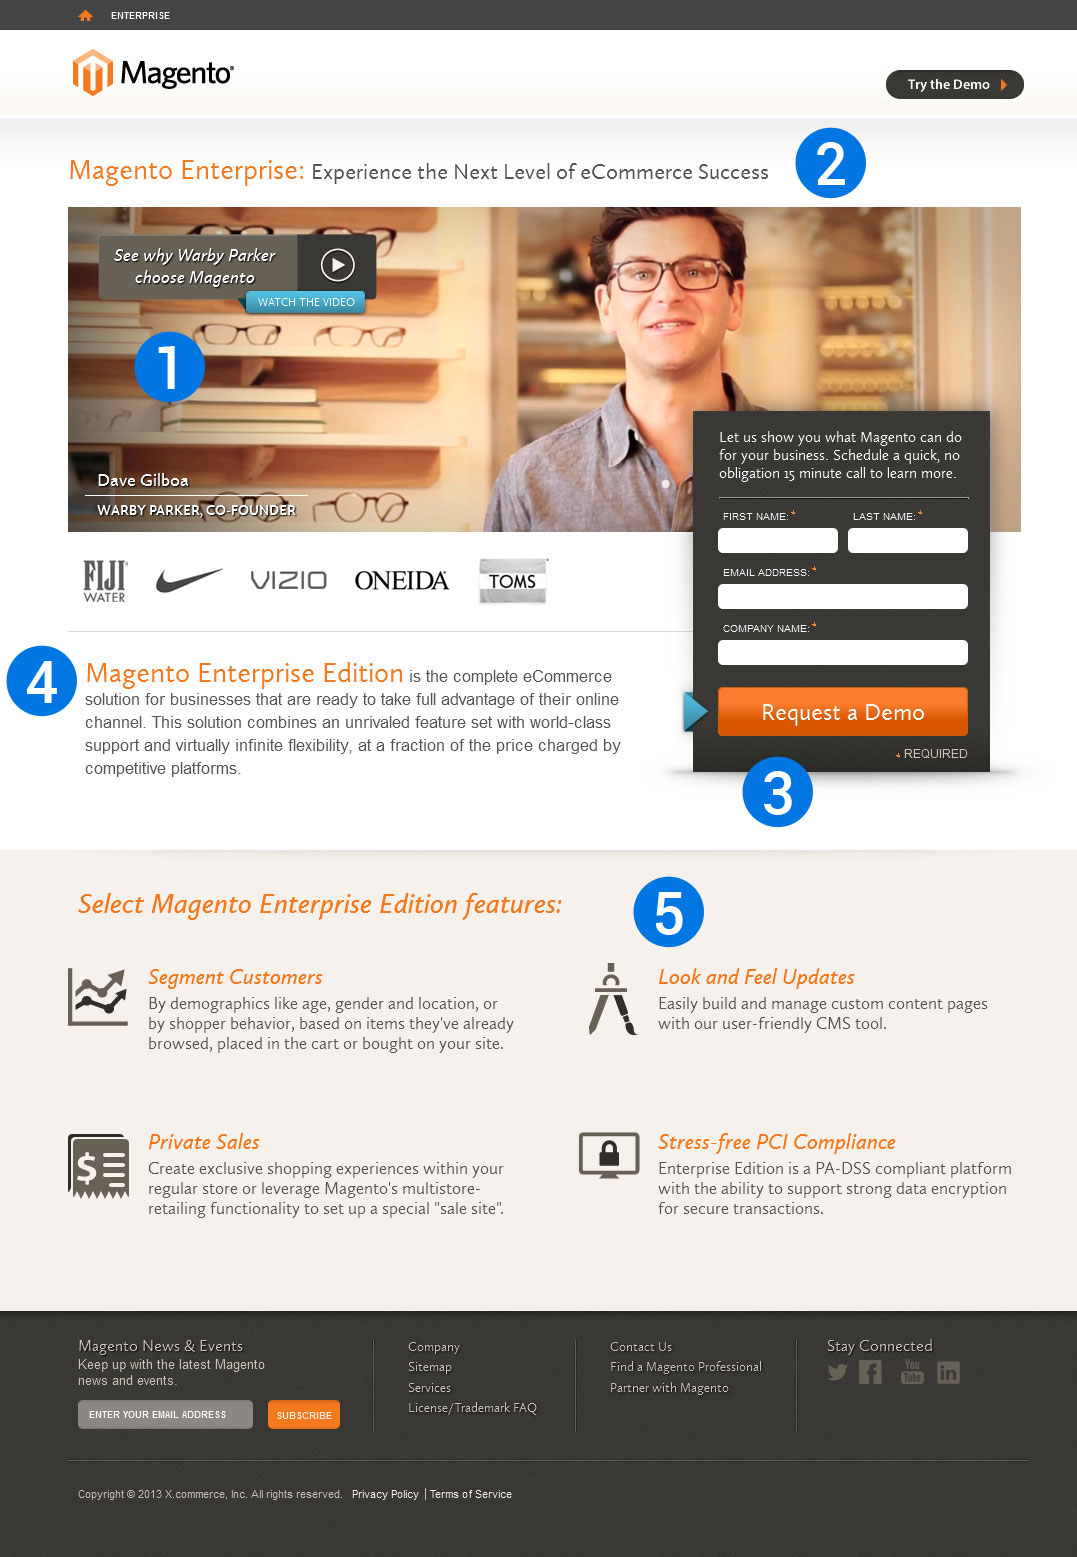 magento landing pages - pacq.co